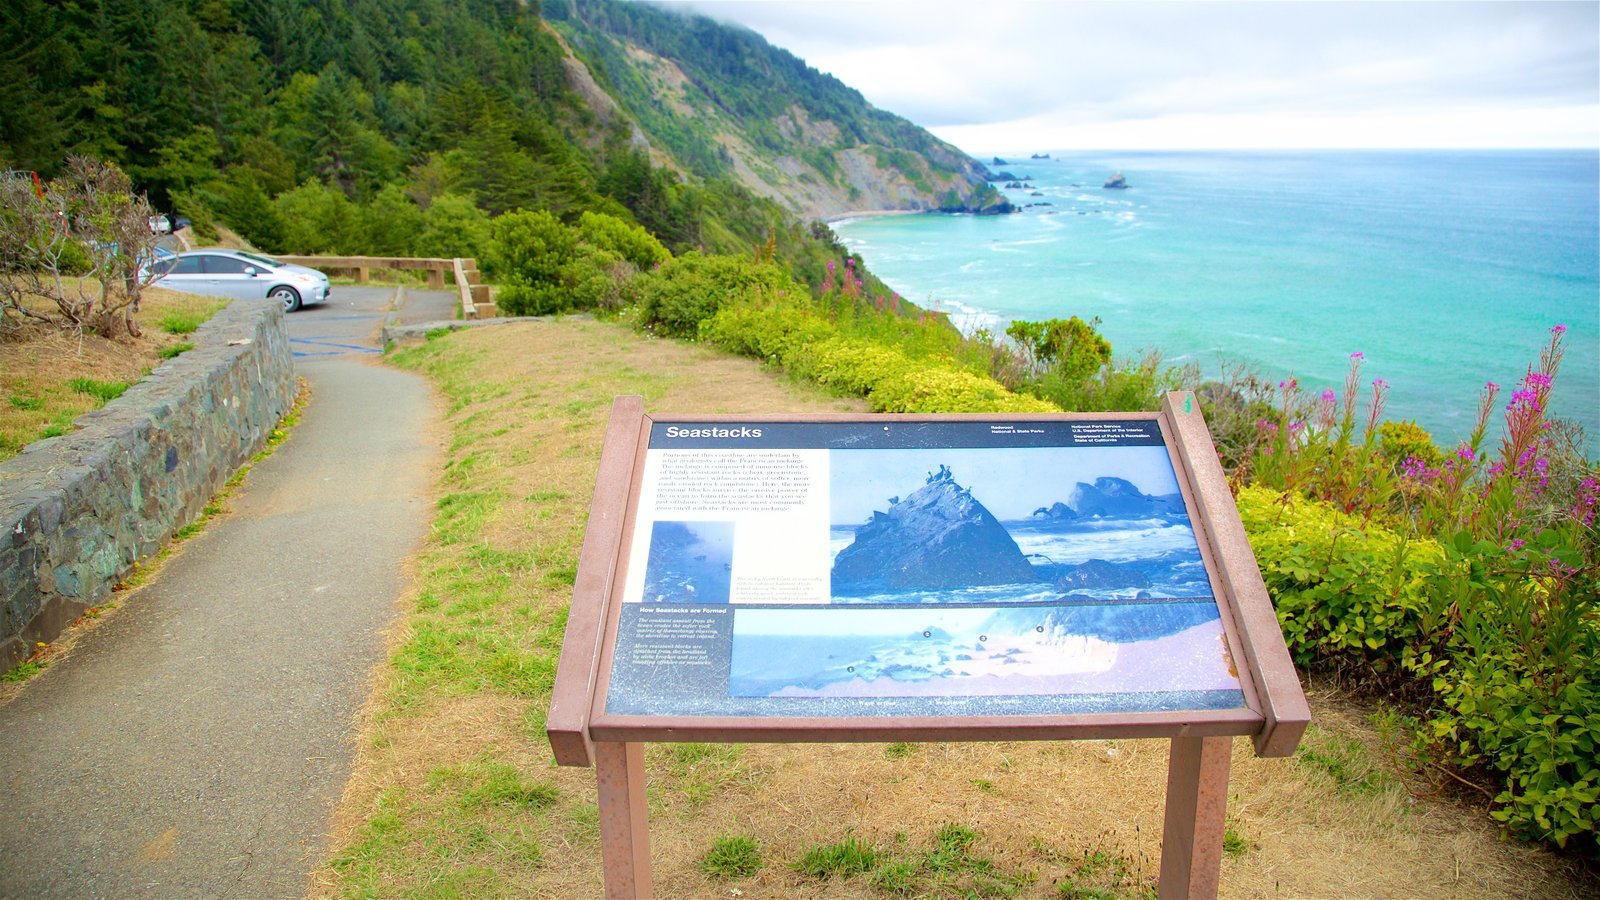 Redwood National and State Parks showing views, general coastal views and signage